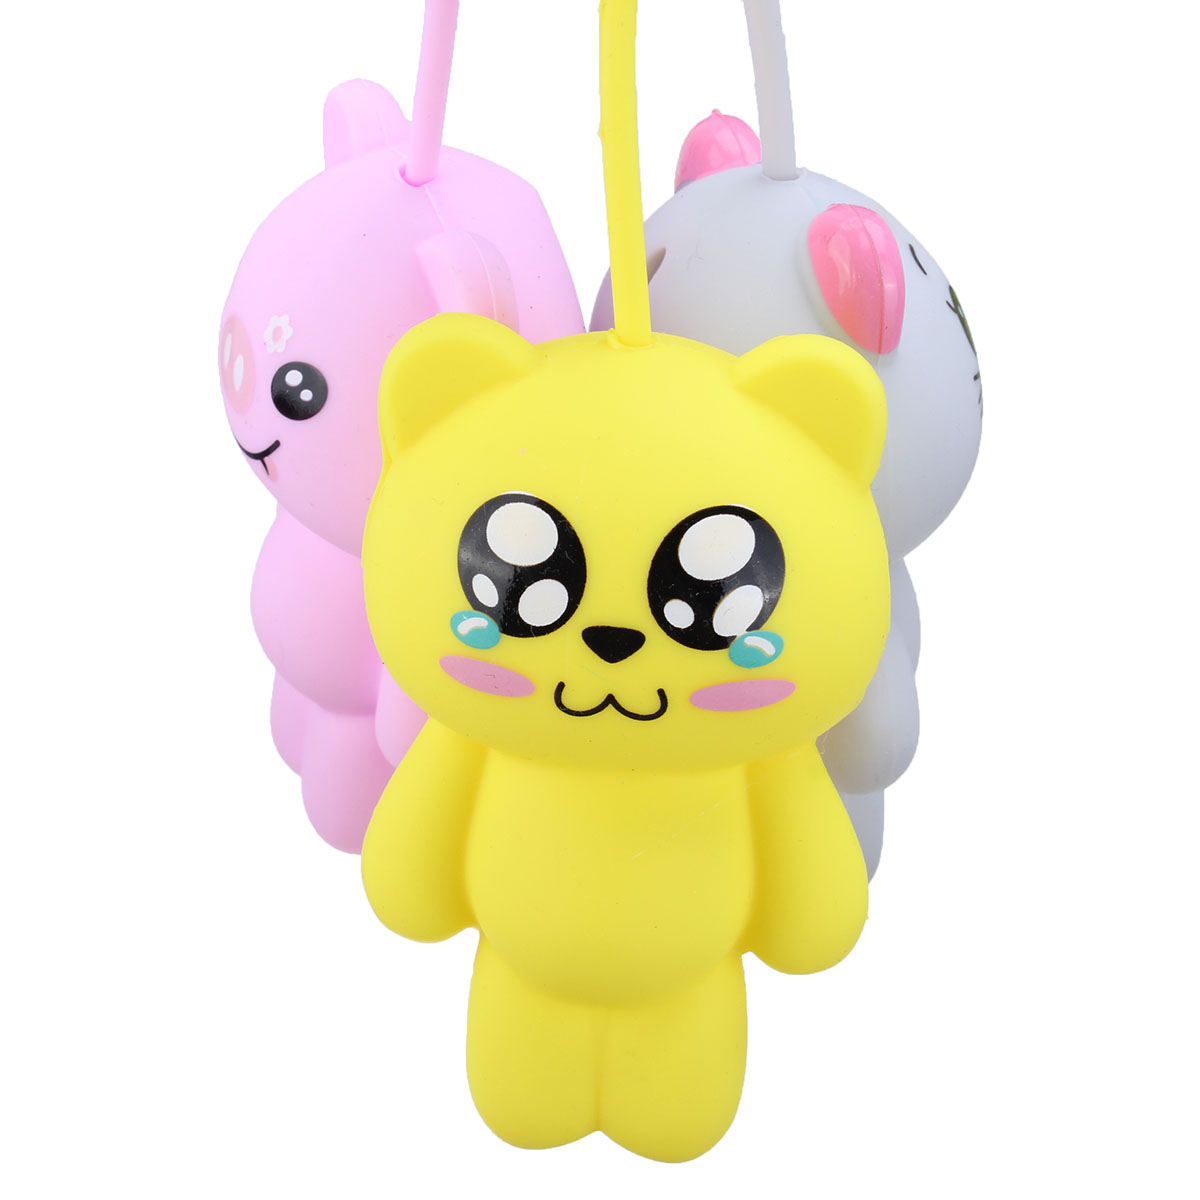 New Cute Cartoon Silicone Key Holder Coin Purse Case Bag Wallet Pendant